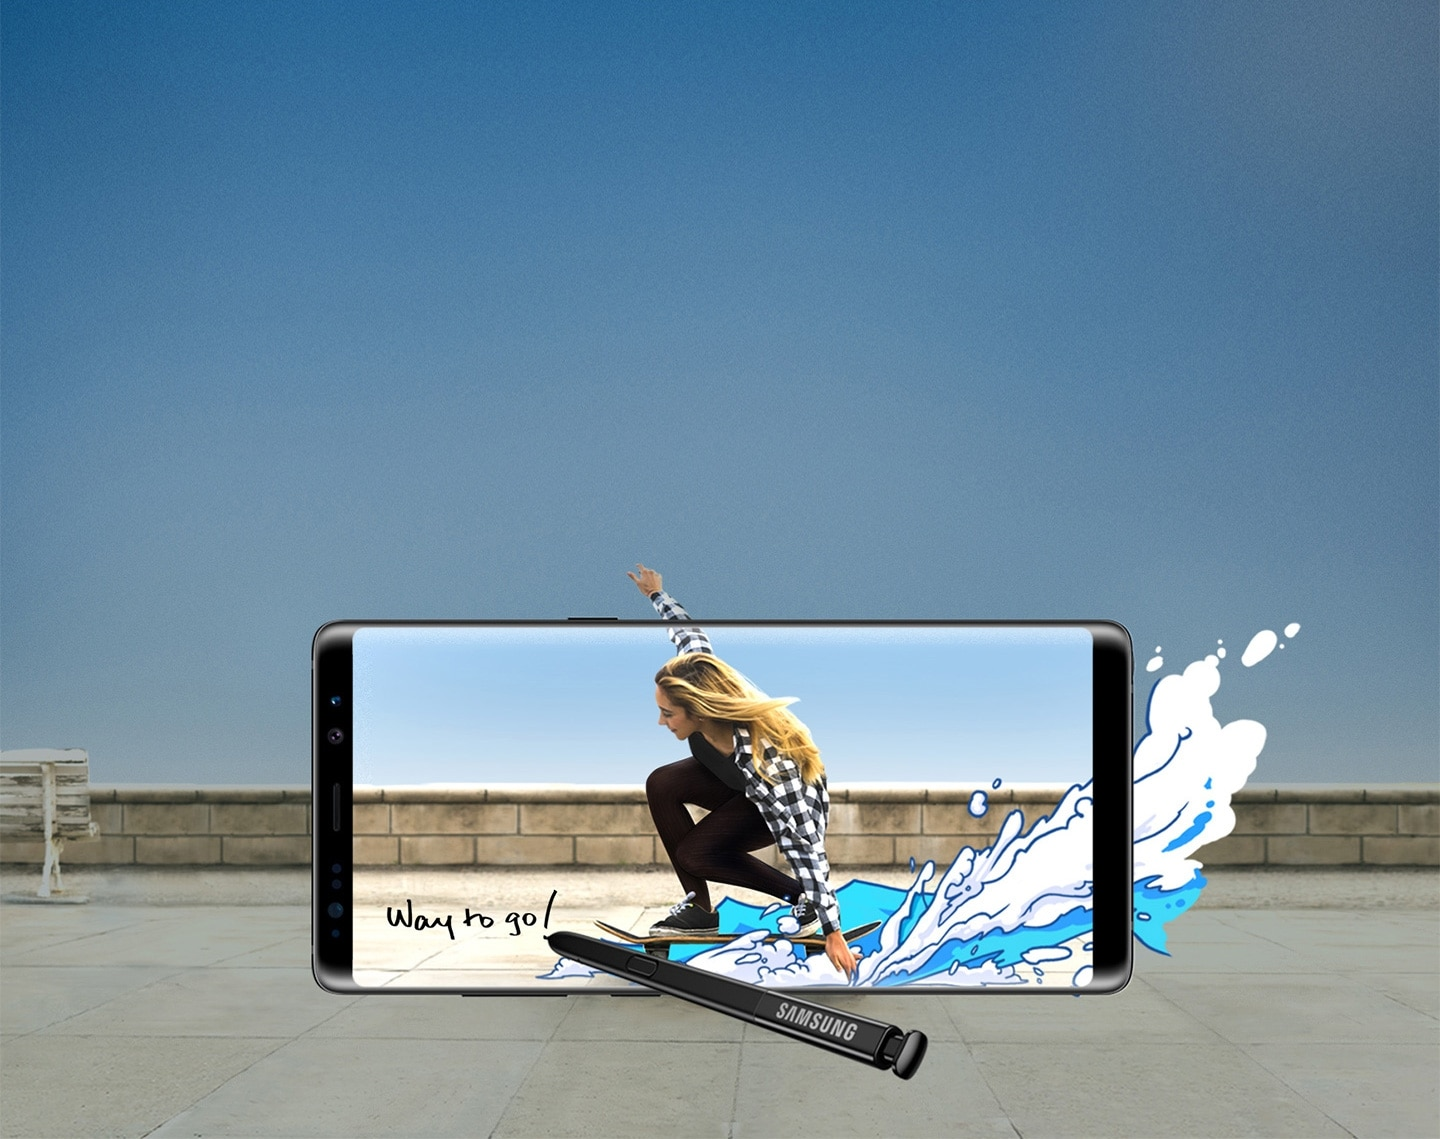 Samsung S Pen being used to draw artwork on a photo of a girl skateboarding shot with the Galaxy Note8 Midnight Black